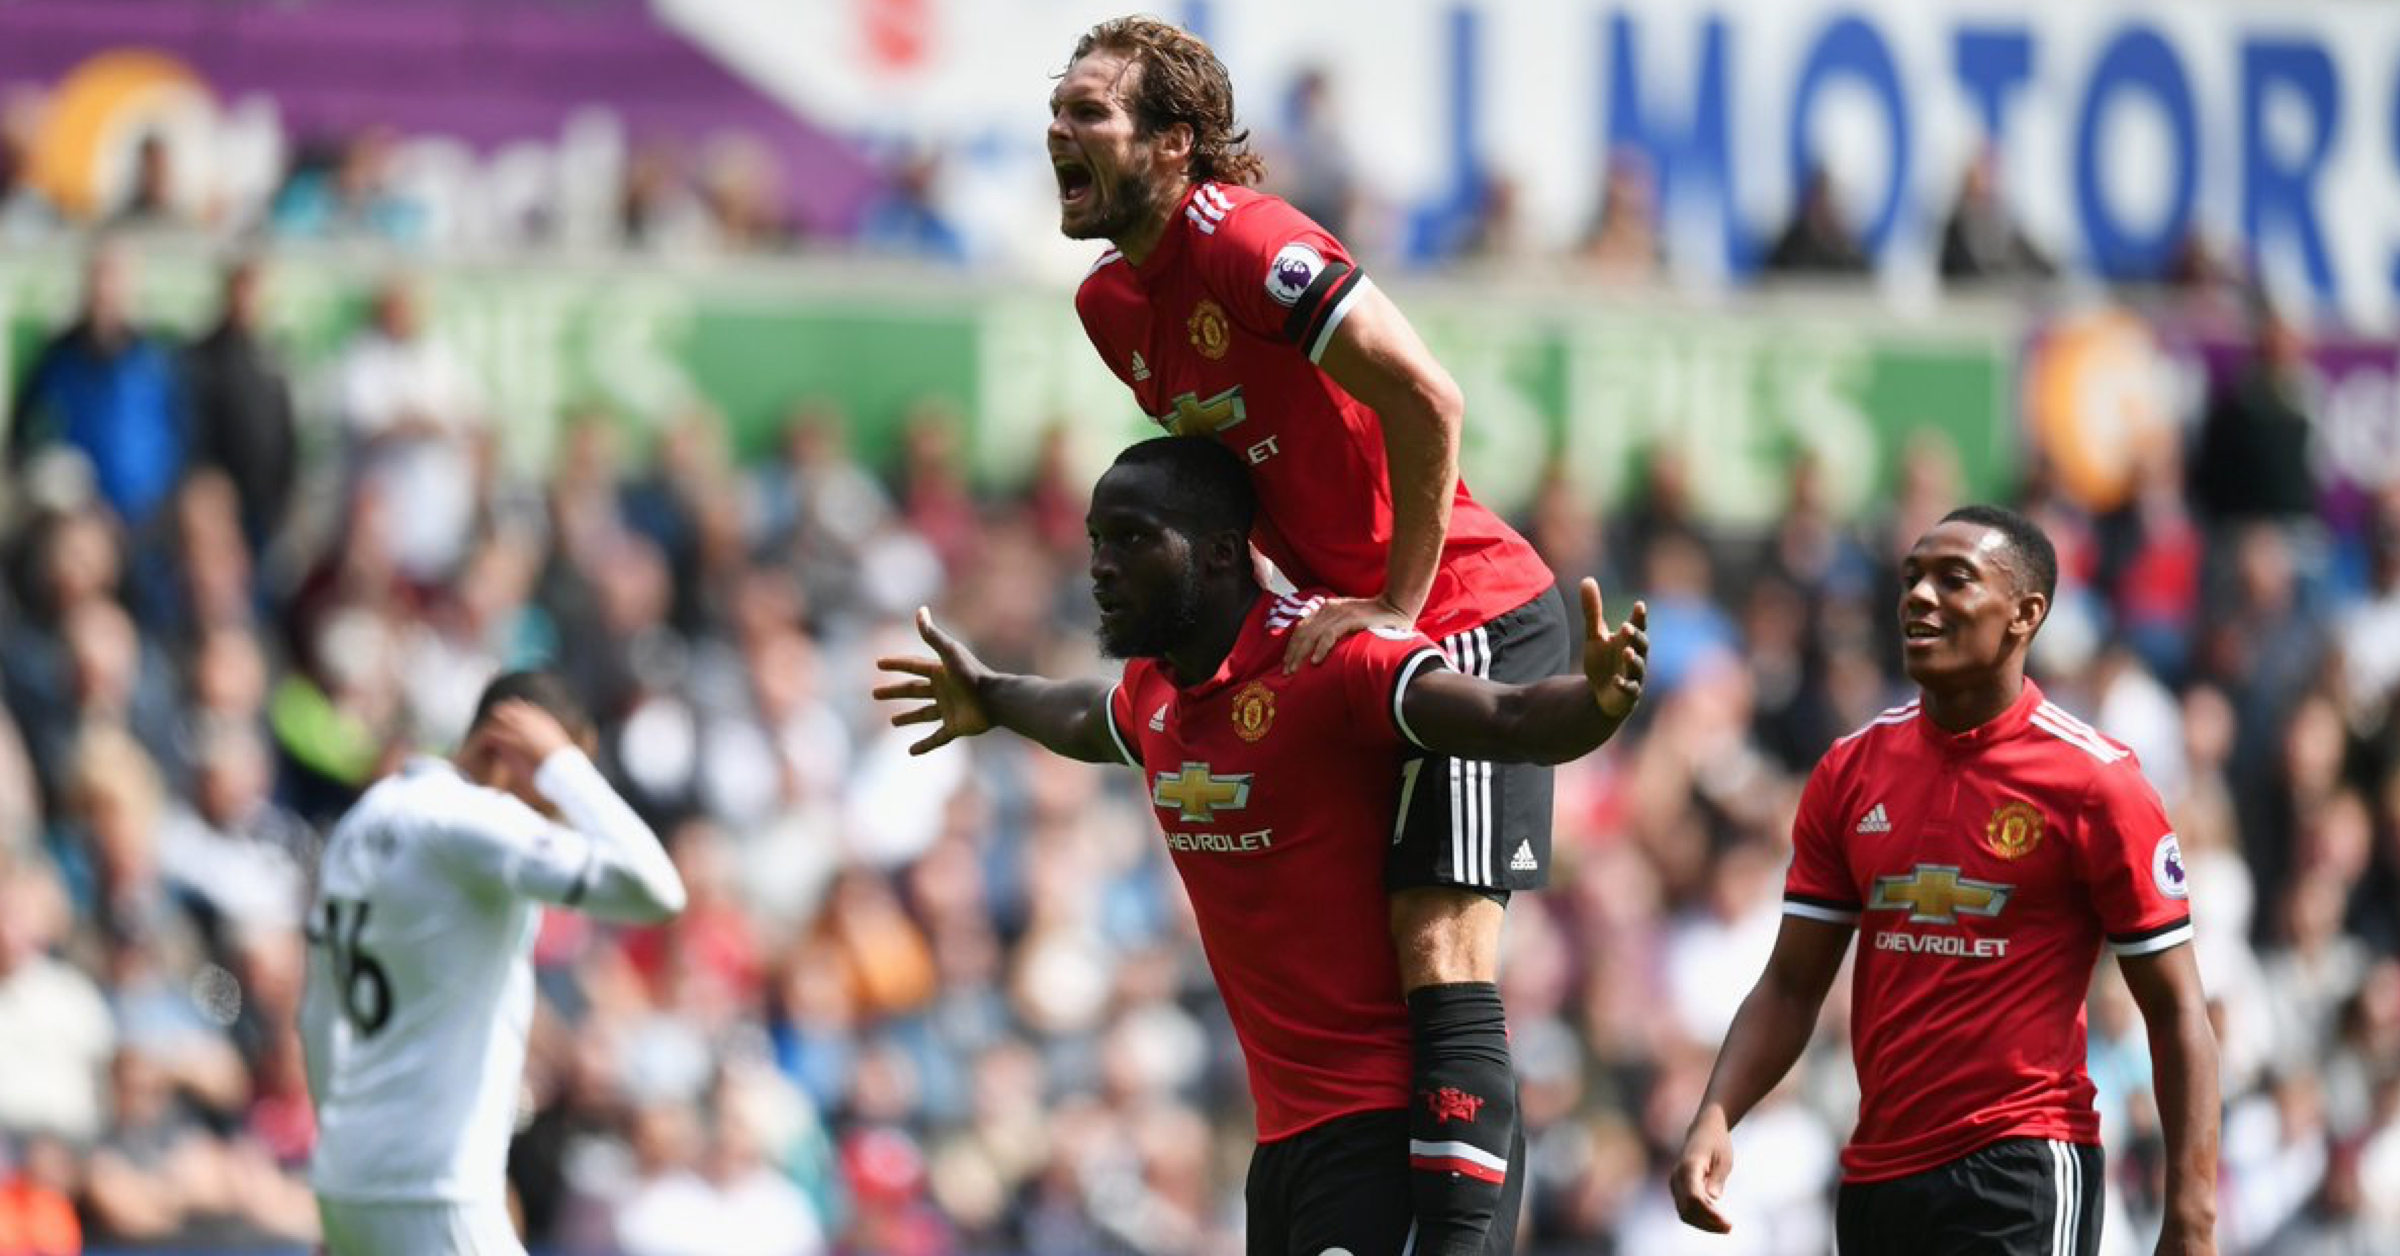 WATCH: Manchester United Score 3 Goals In 3 Minutes And 14 Seconds